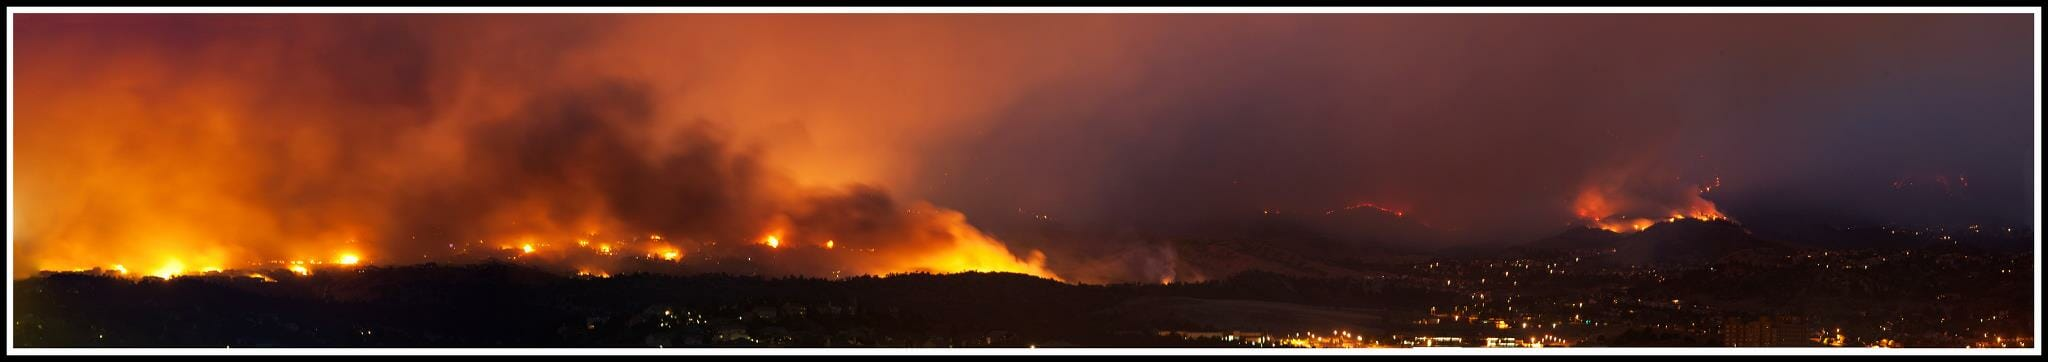 Waldo Canyon Fire in Colorado Springs